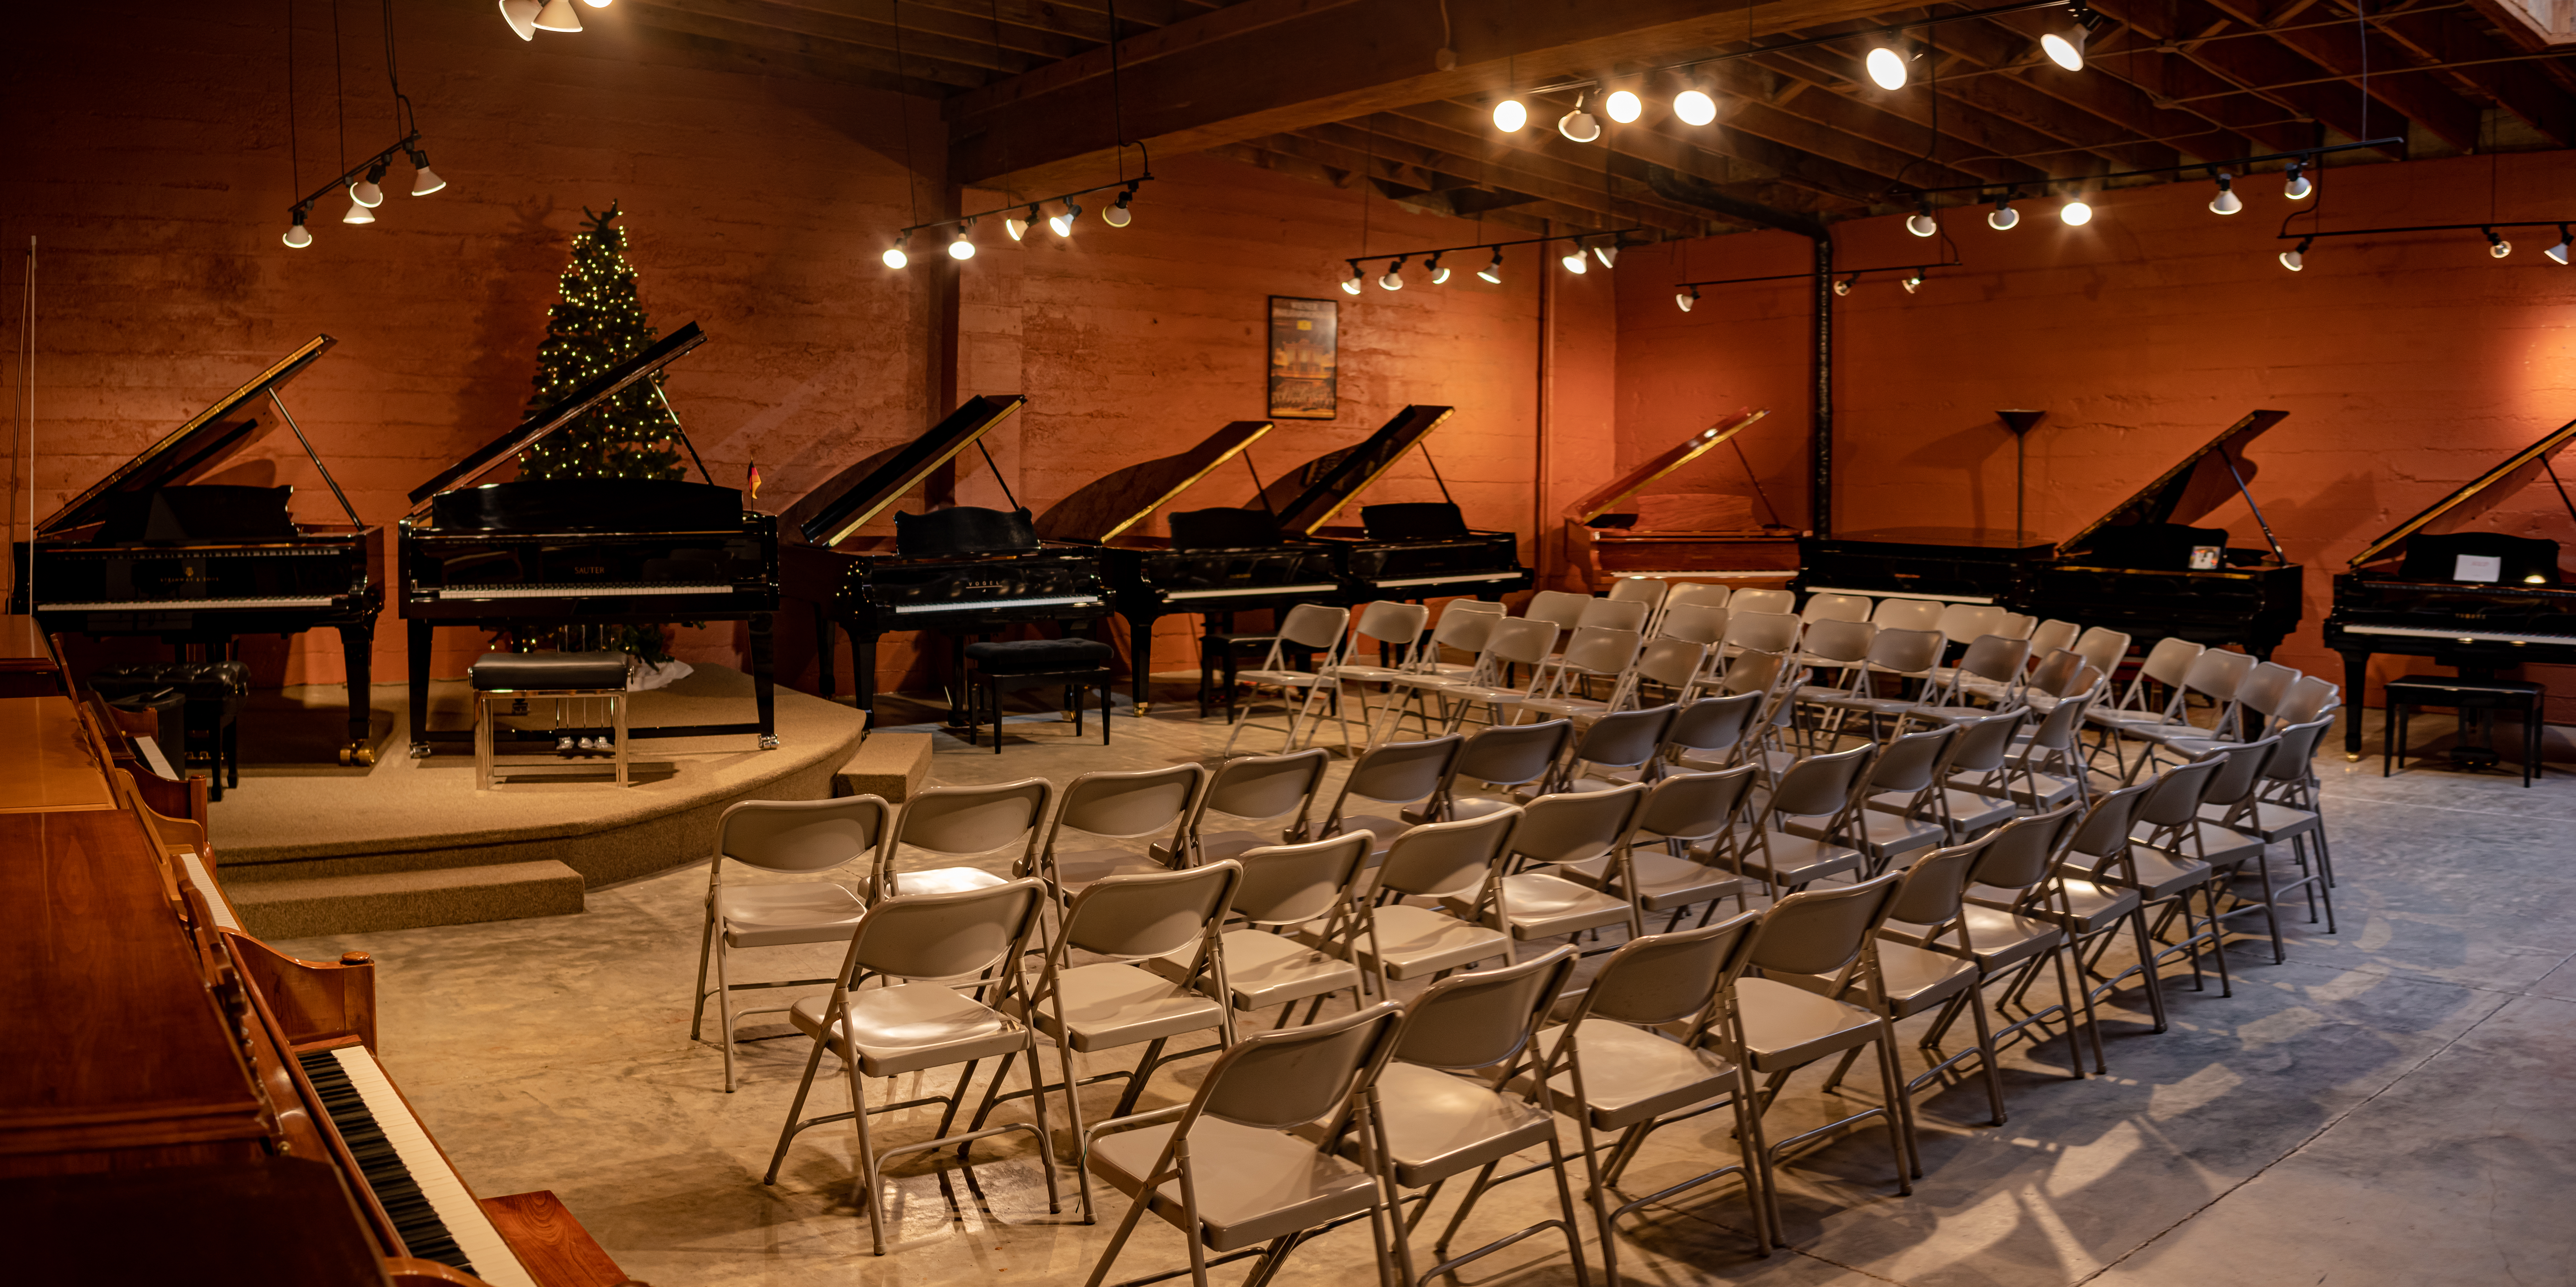 piano-and-recital-event-rental-space-at-michelles-piano-in-portland-or-pic1